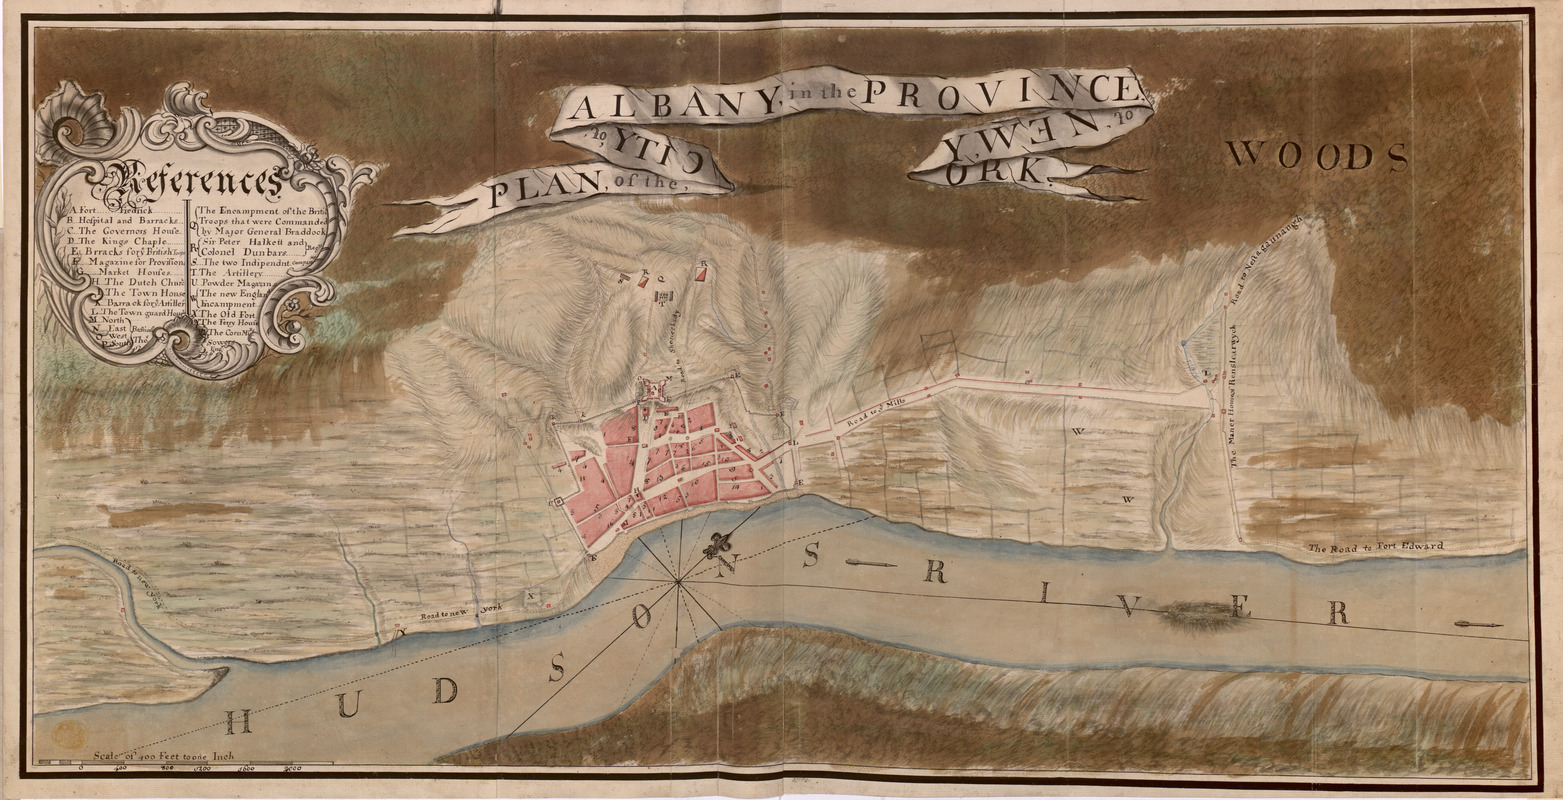 PLAN, of the CITY, of ALBANY, in the PROVINCE, of, NEW, YORK